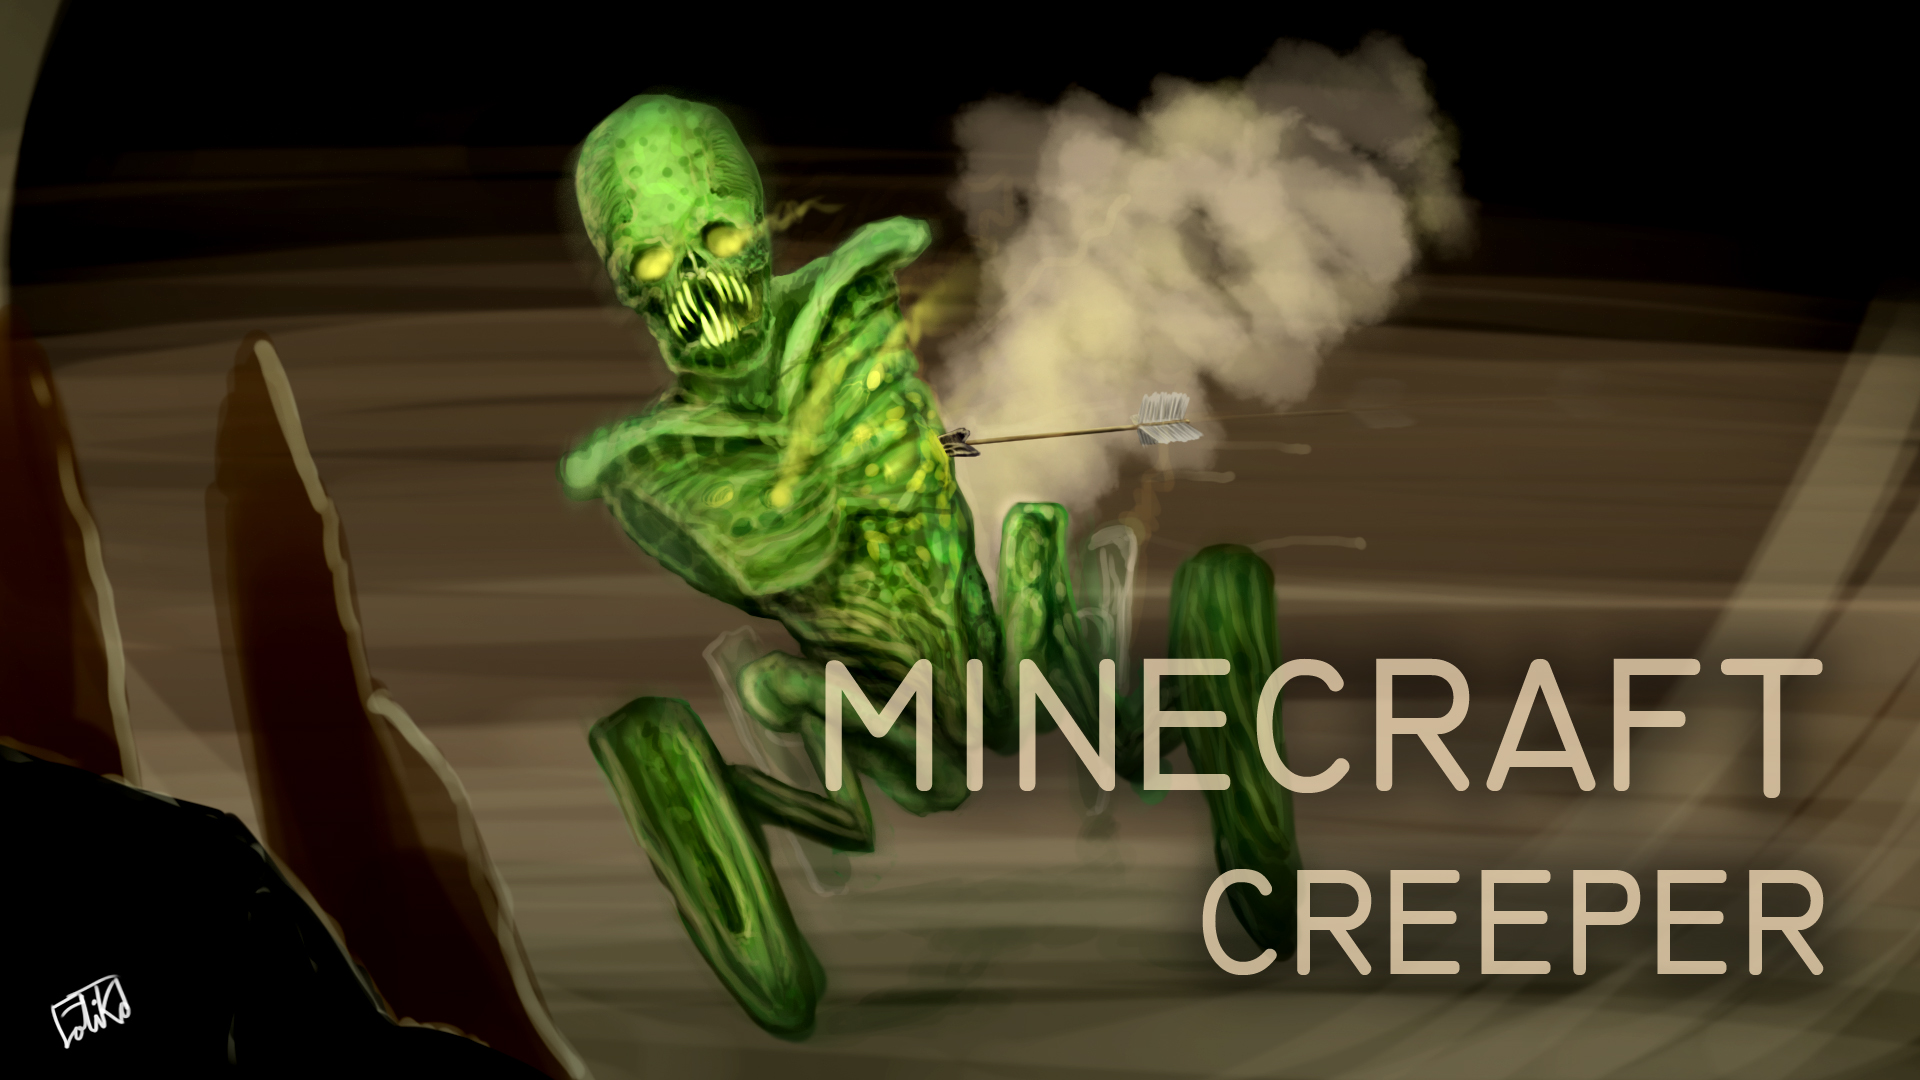 Minecraft Creeper In Real Life Minecraft - creeper art